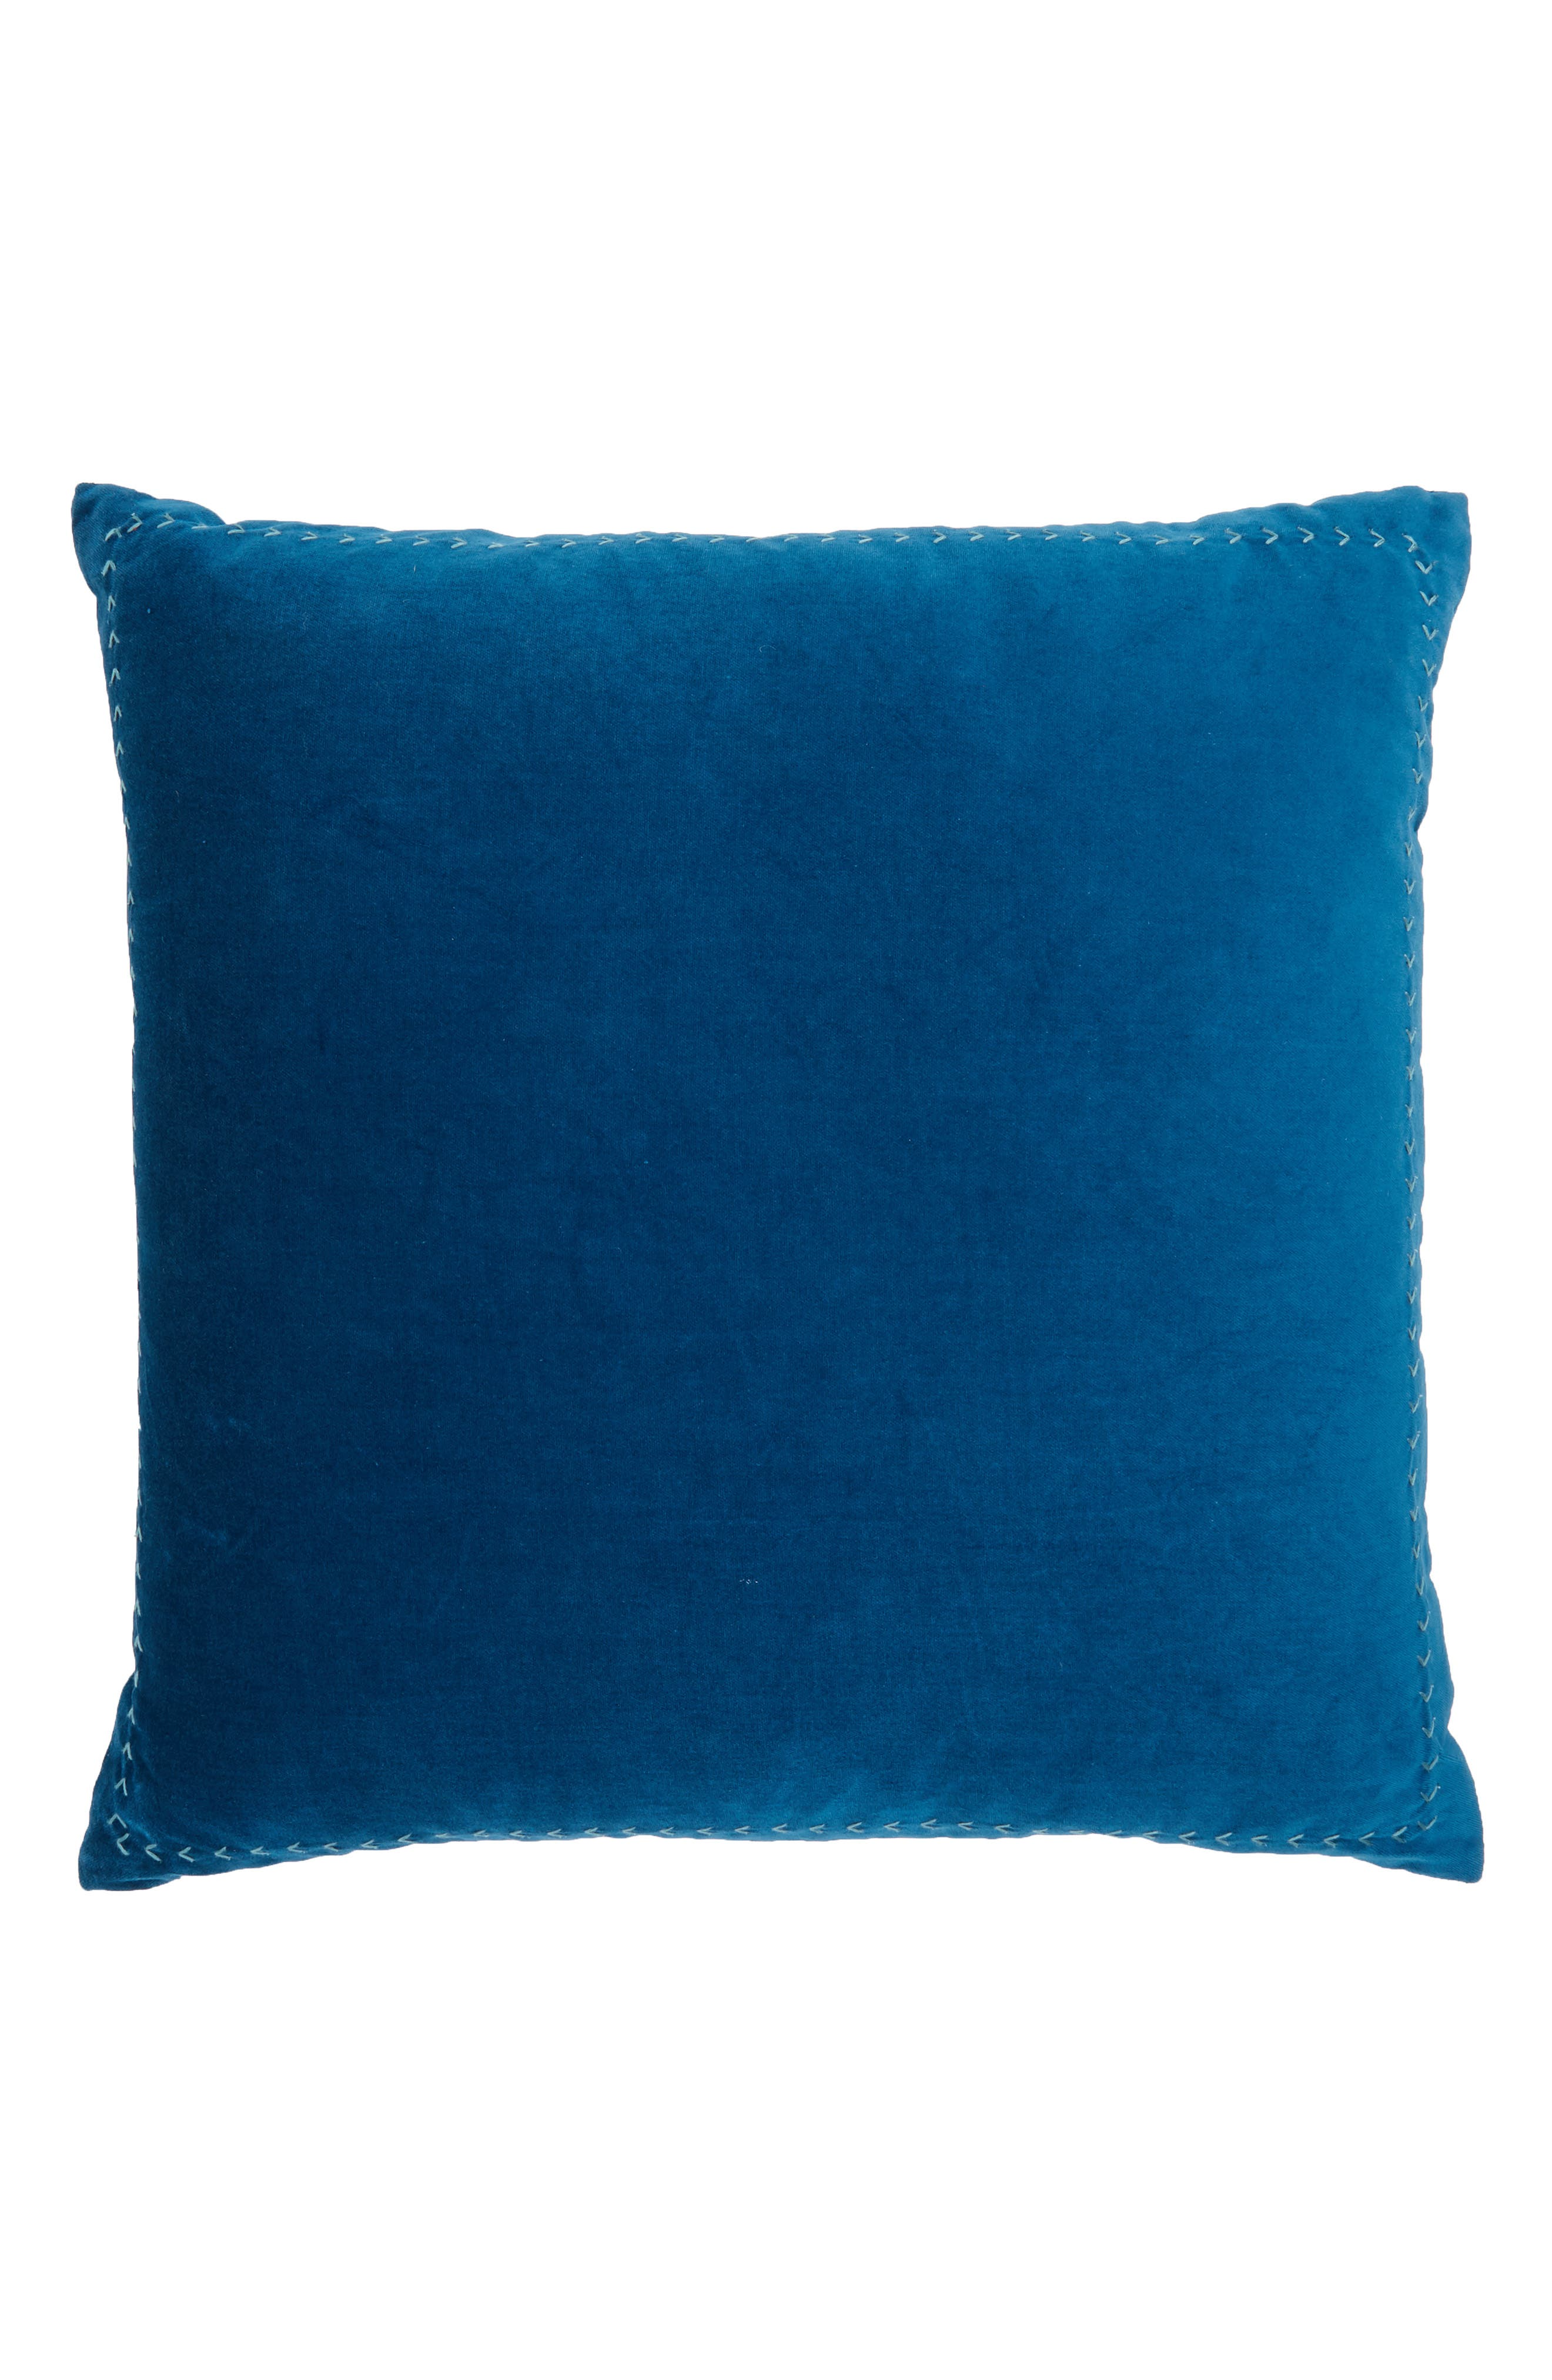 Velvet Accent Pillow,                             Main thumbnail 1, color,